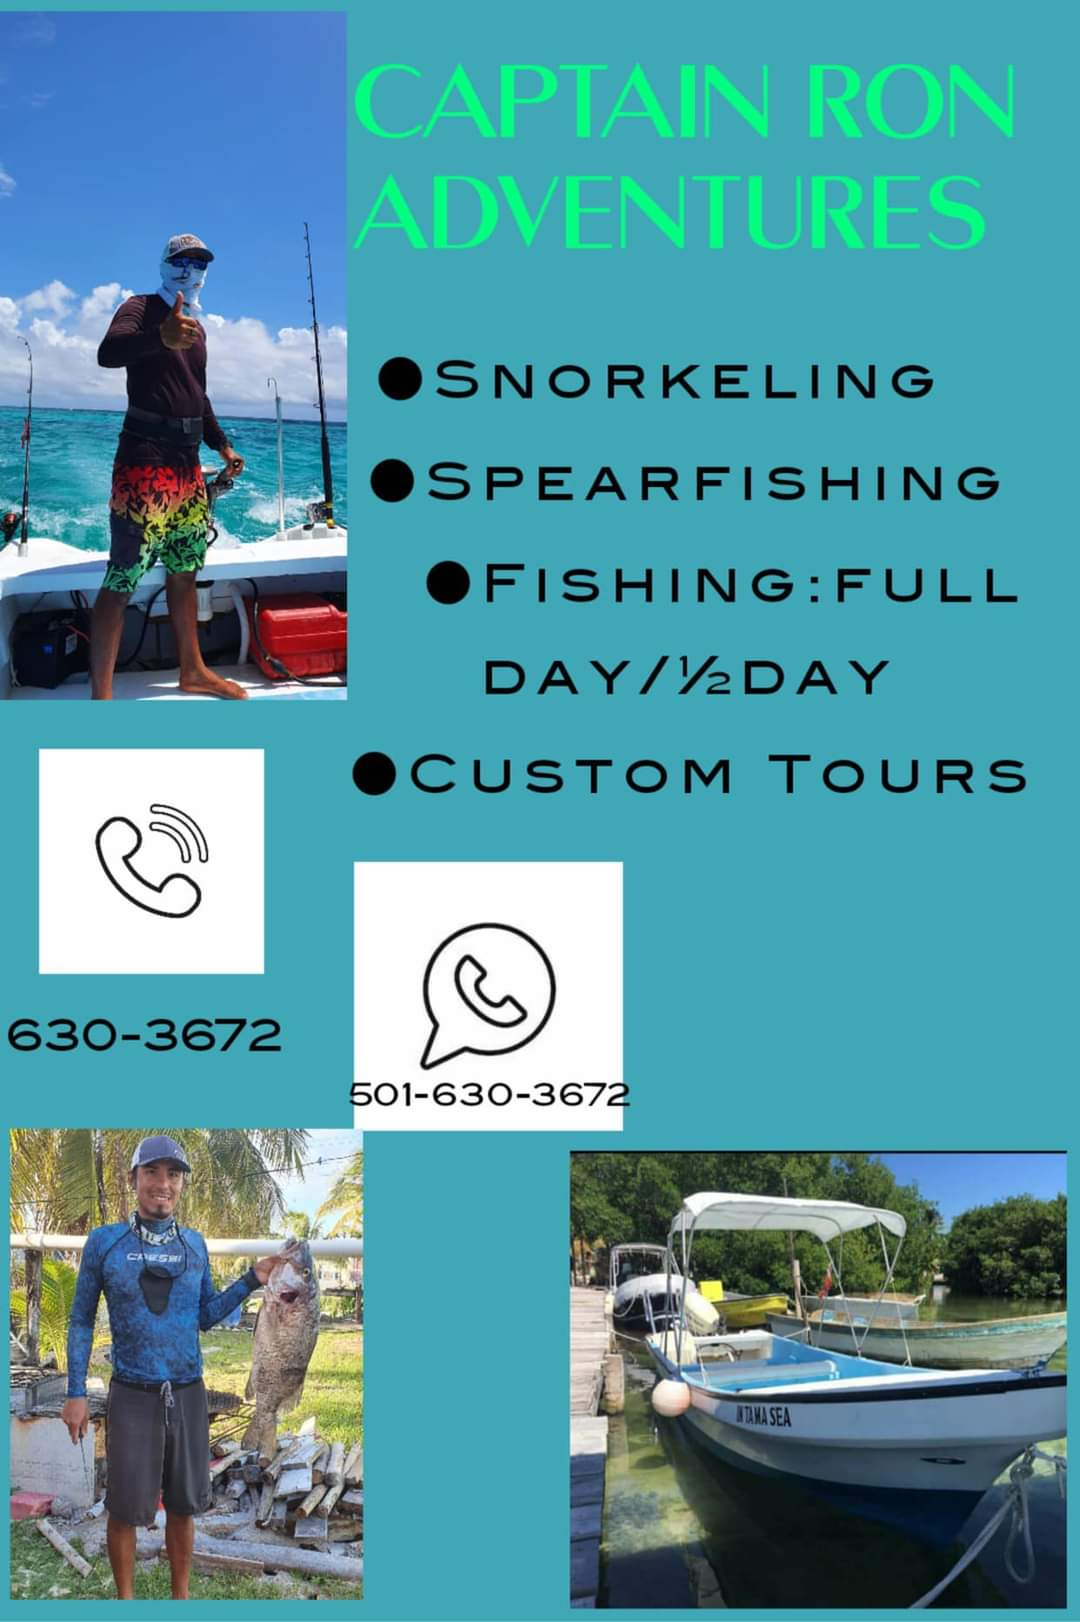 Fishing and snorkeling tours in Caye Caulker, Belize.